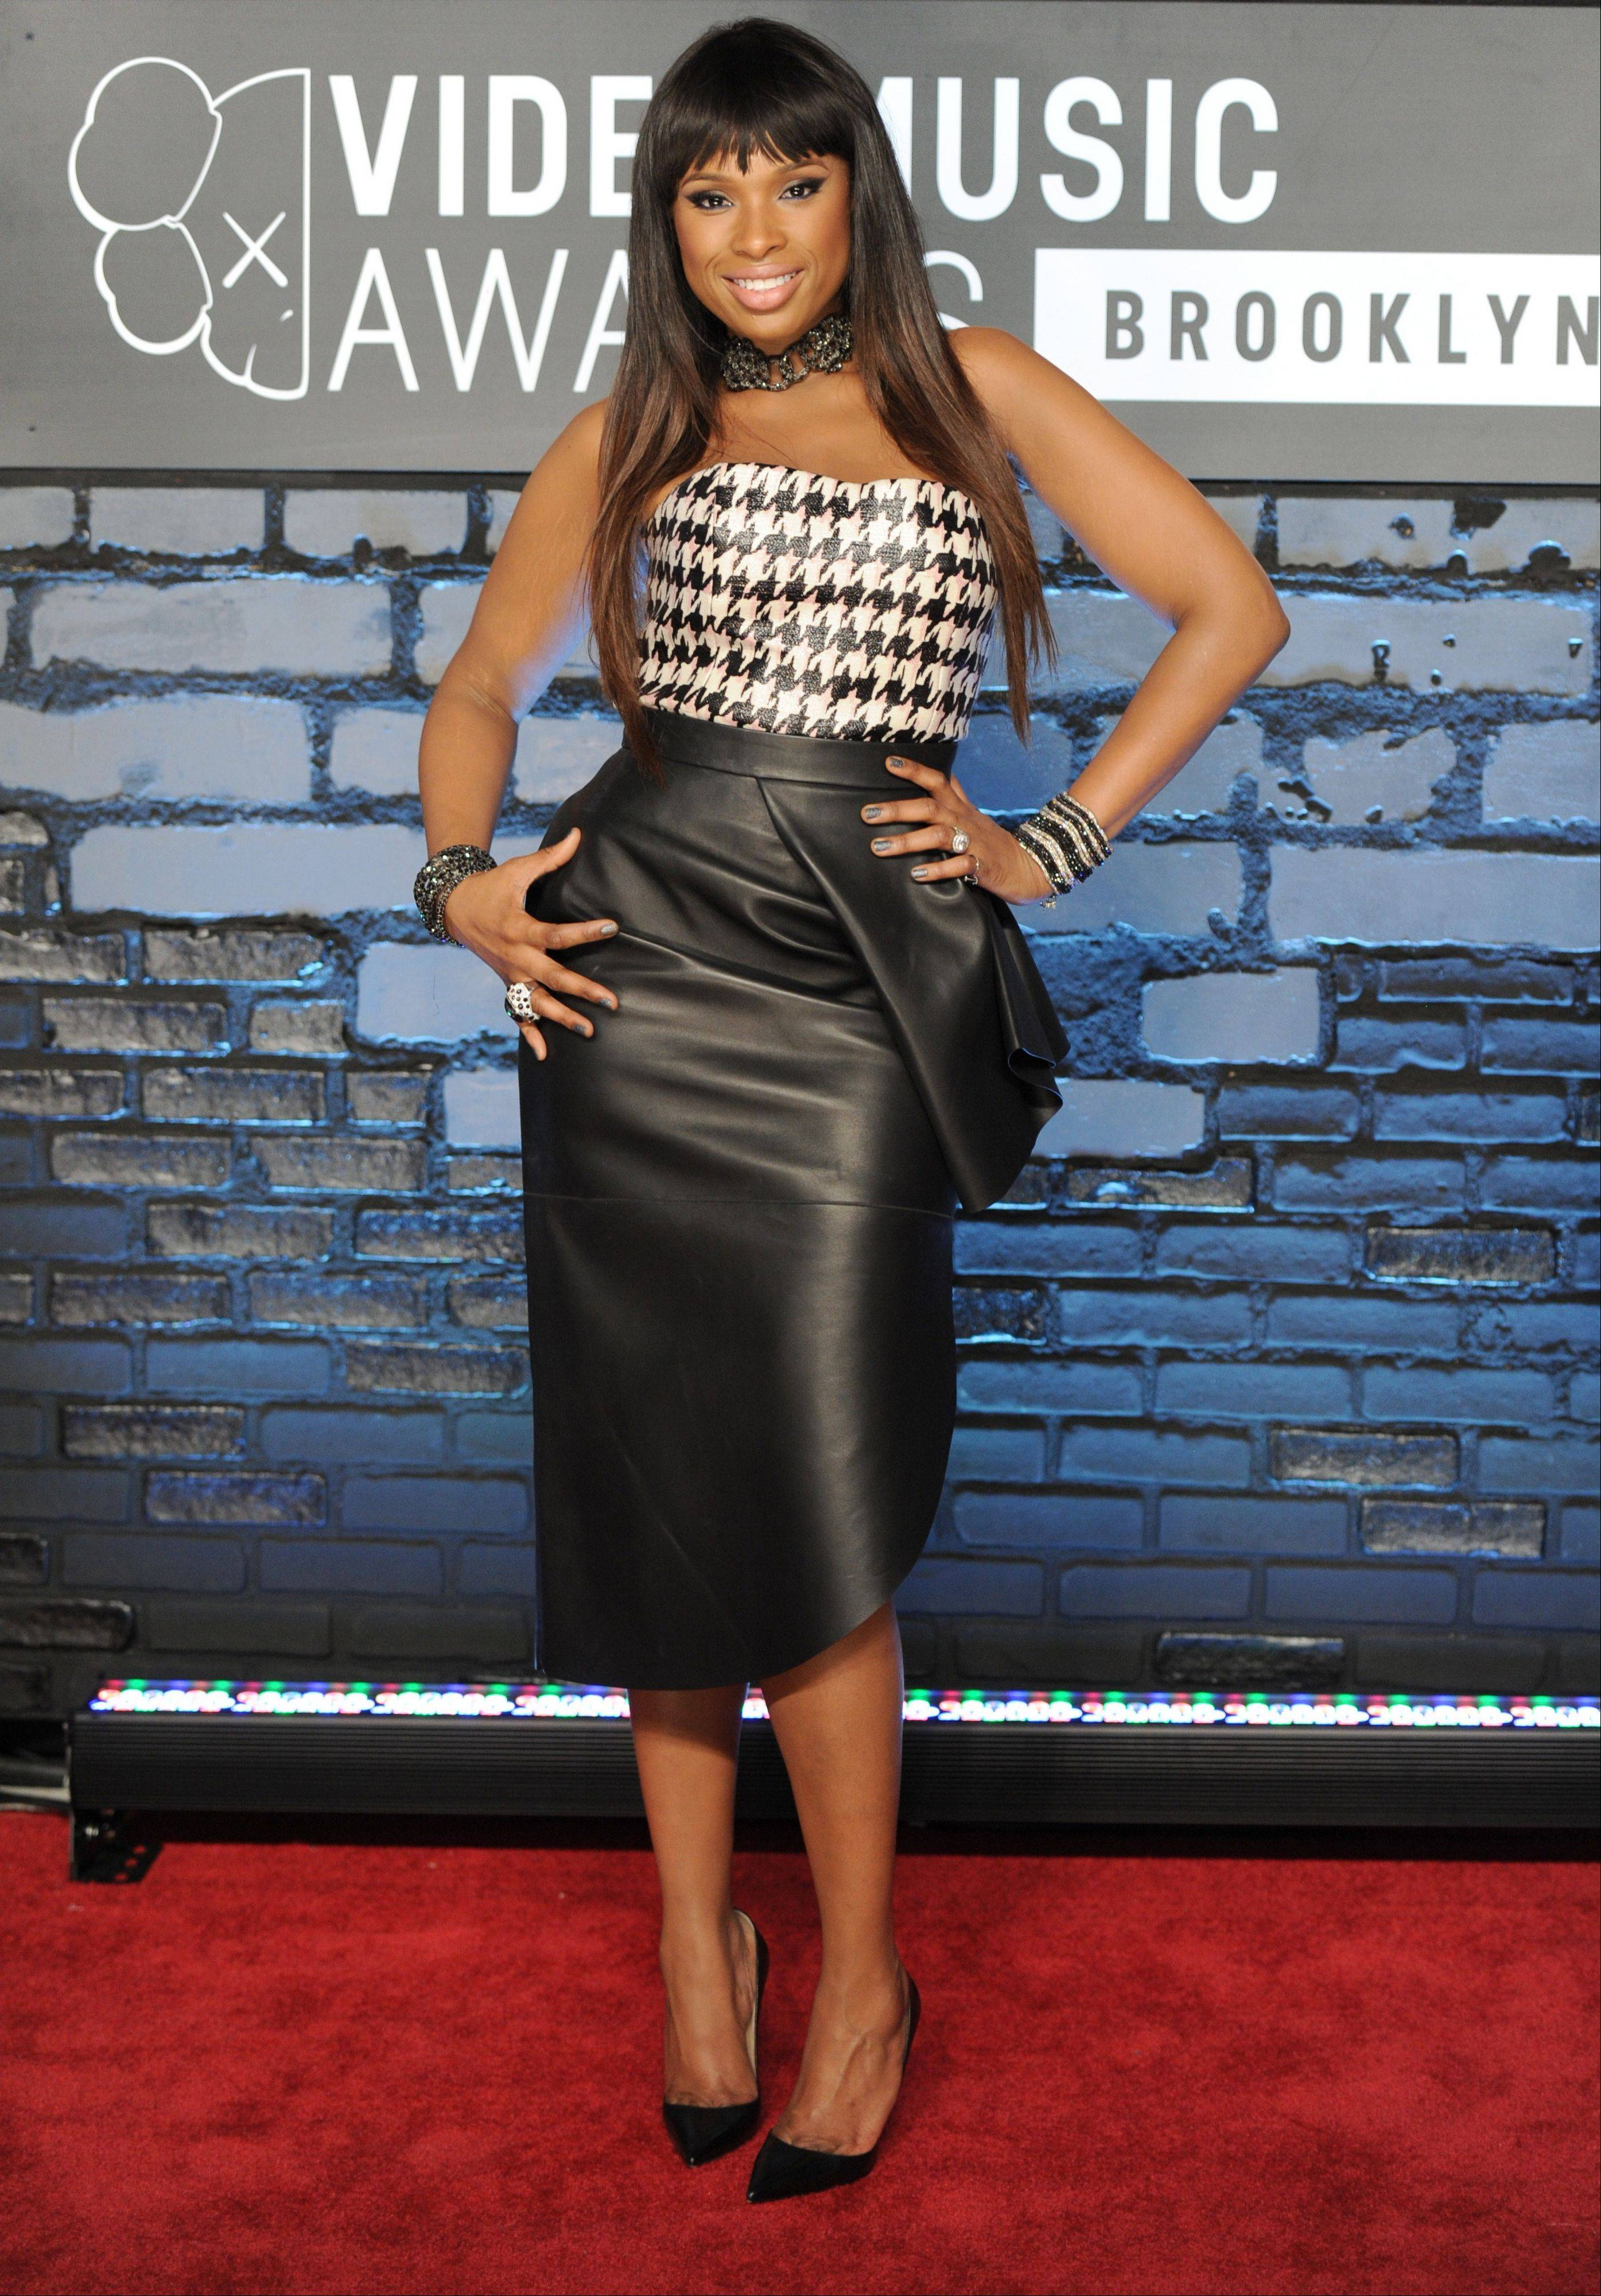 Jennifer Hudson arrives at the MTV Video Music Awards on Sunday, Aug. 25, 2013, at the Barclays Center in the Brooklyn borough of New York.